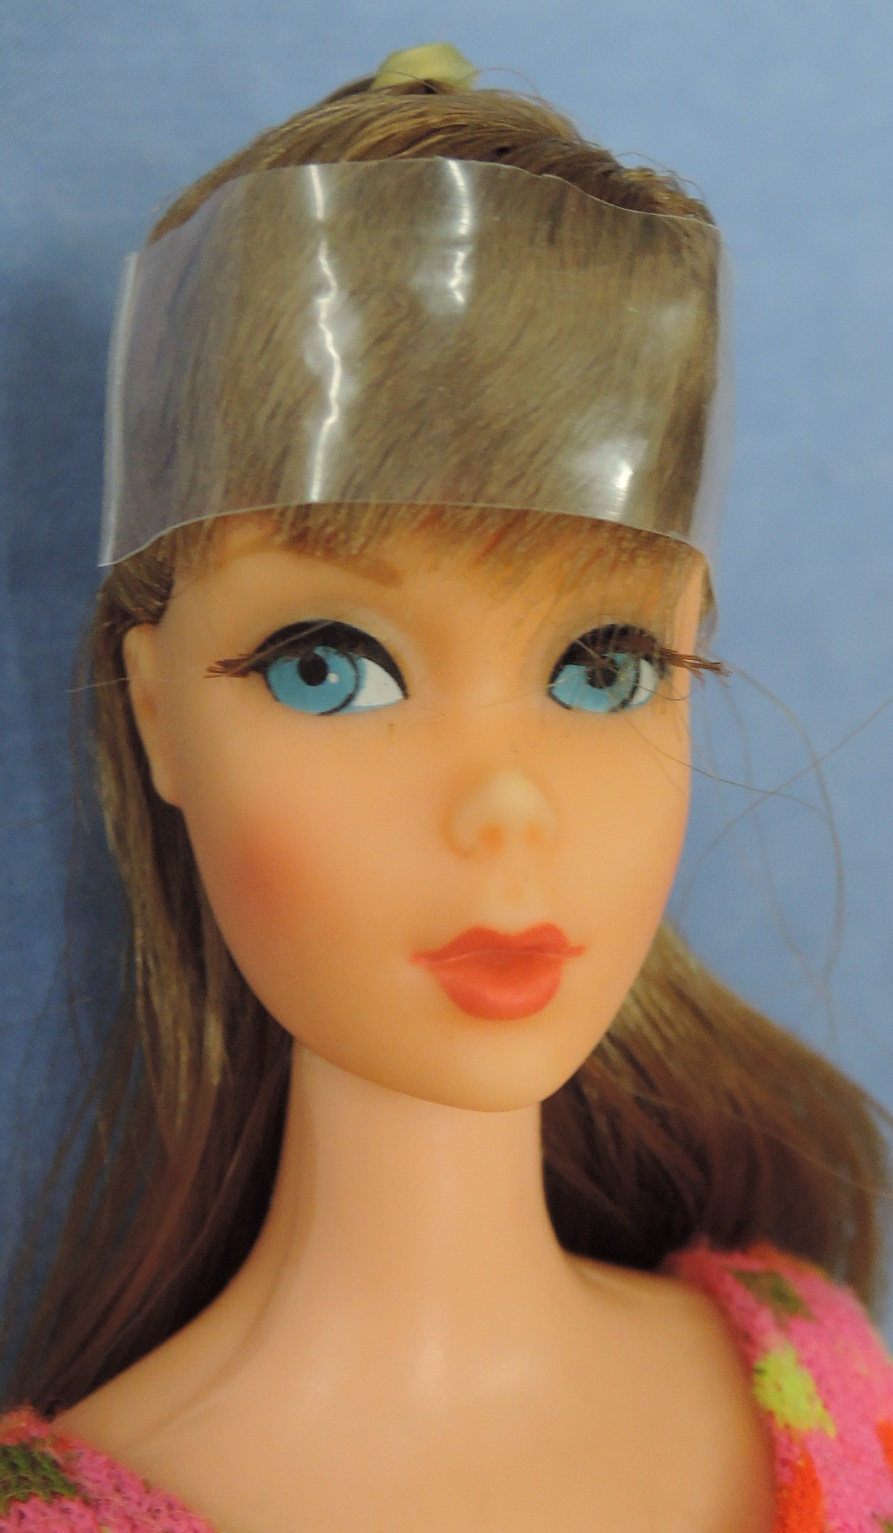 Vb215 1968 Twist N Turn Barbie 1967 74 Dolls Nice